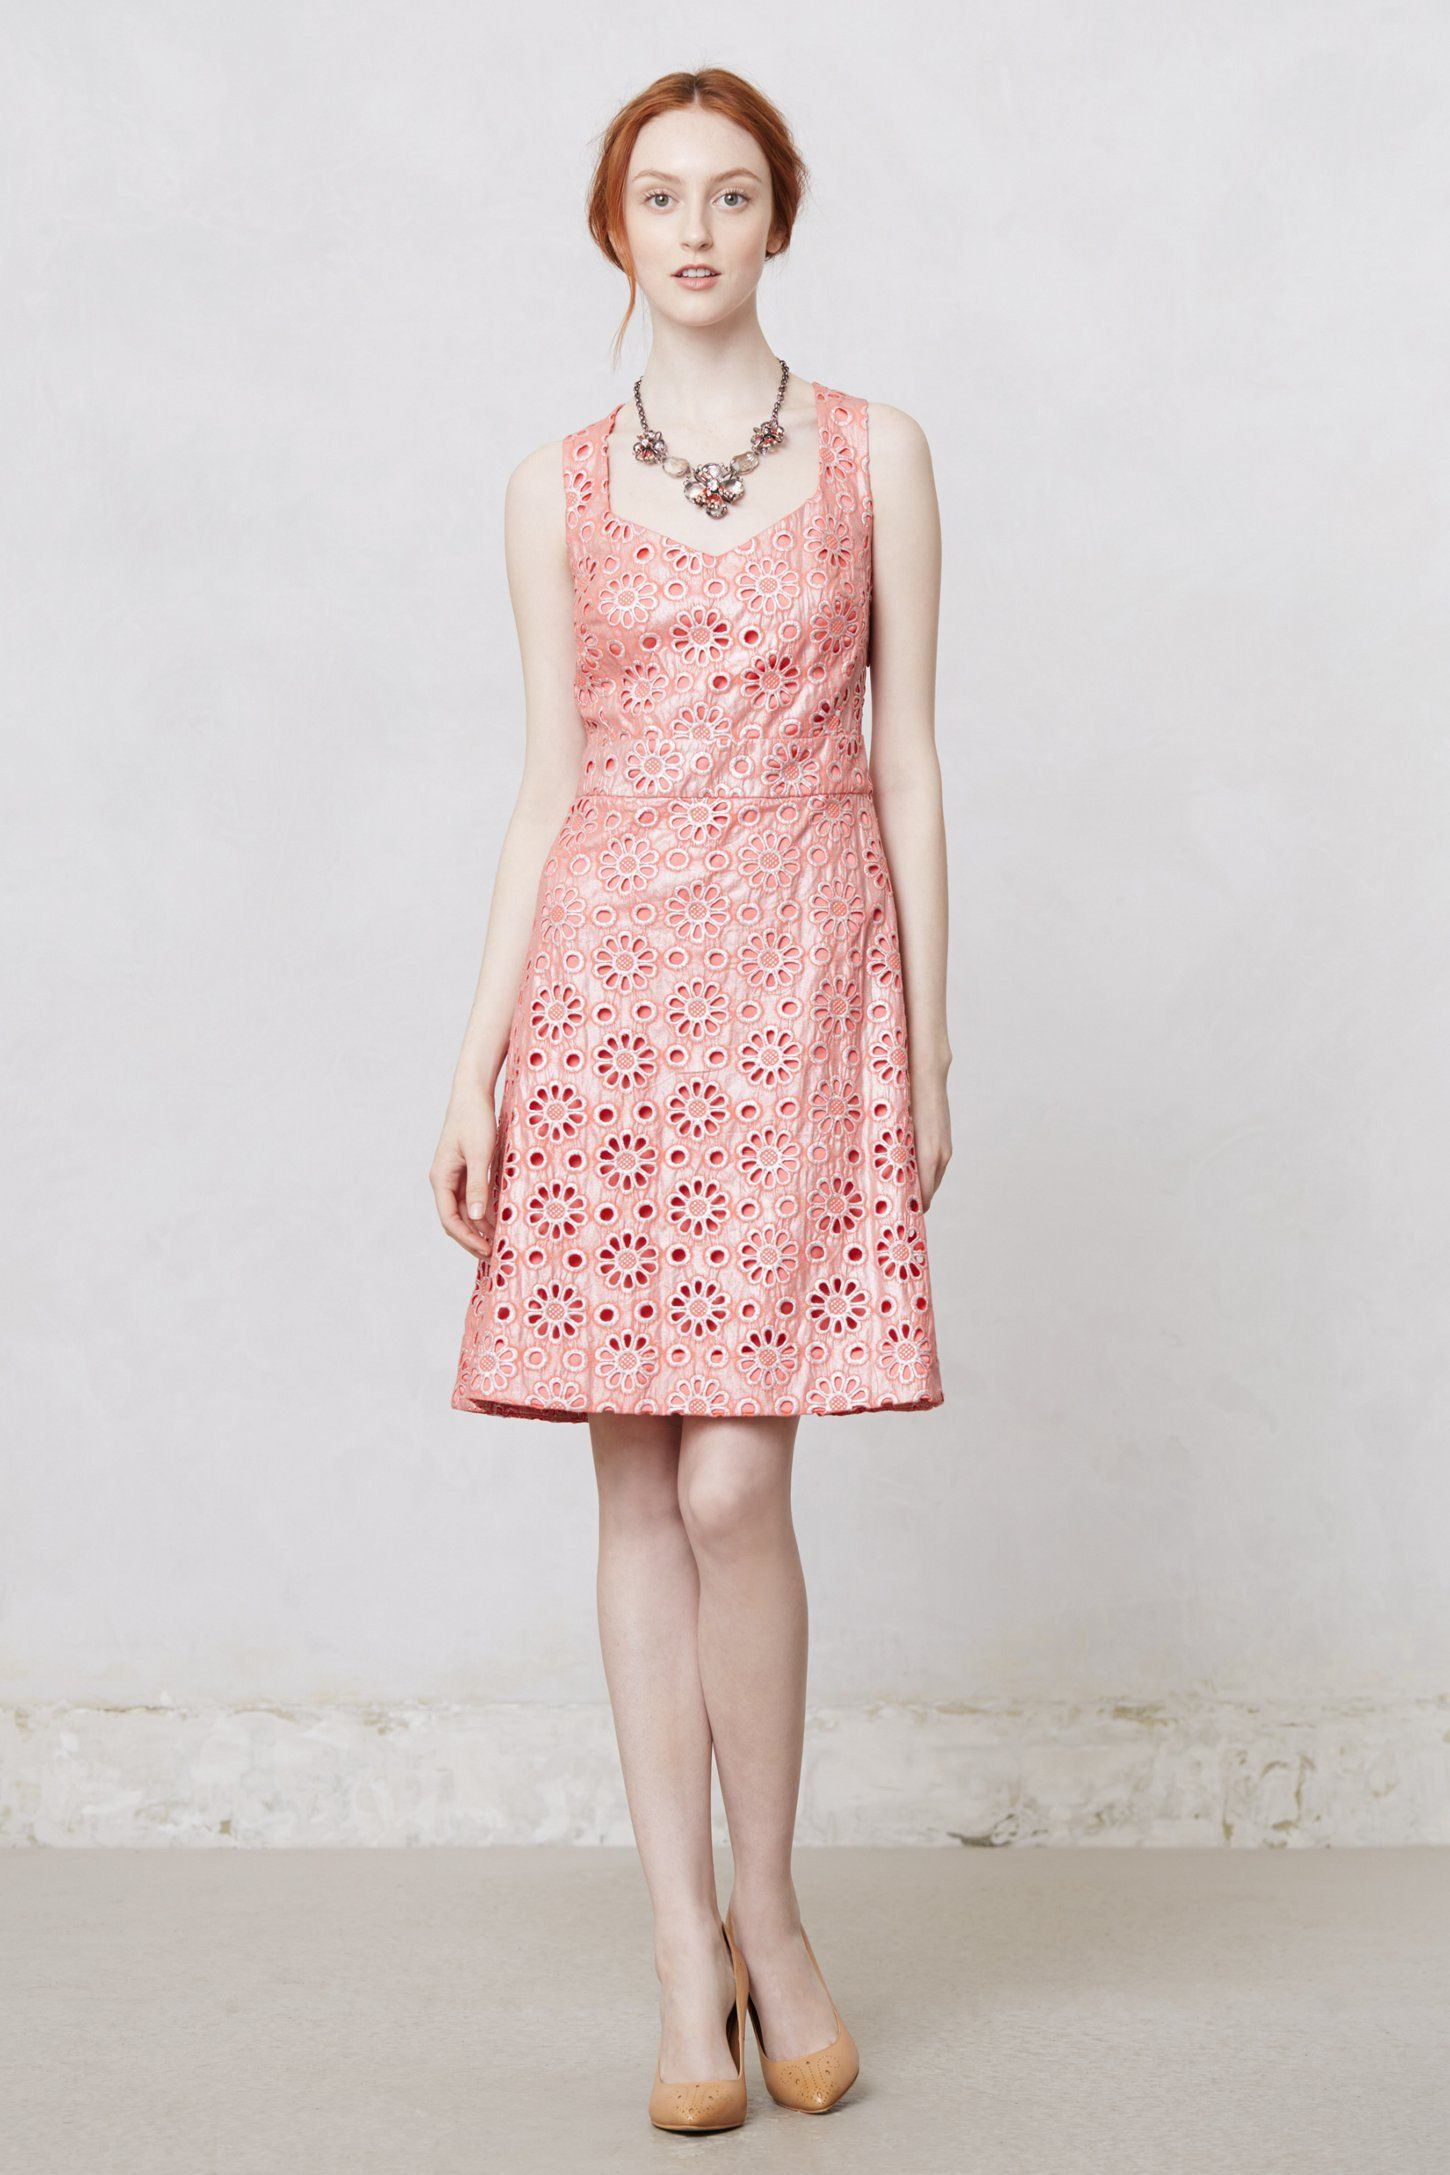 Coralshine Dress - Anthropologie.com | I would wear the #@$% out of ...